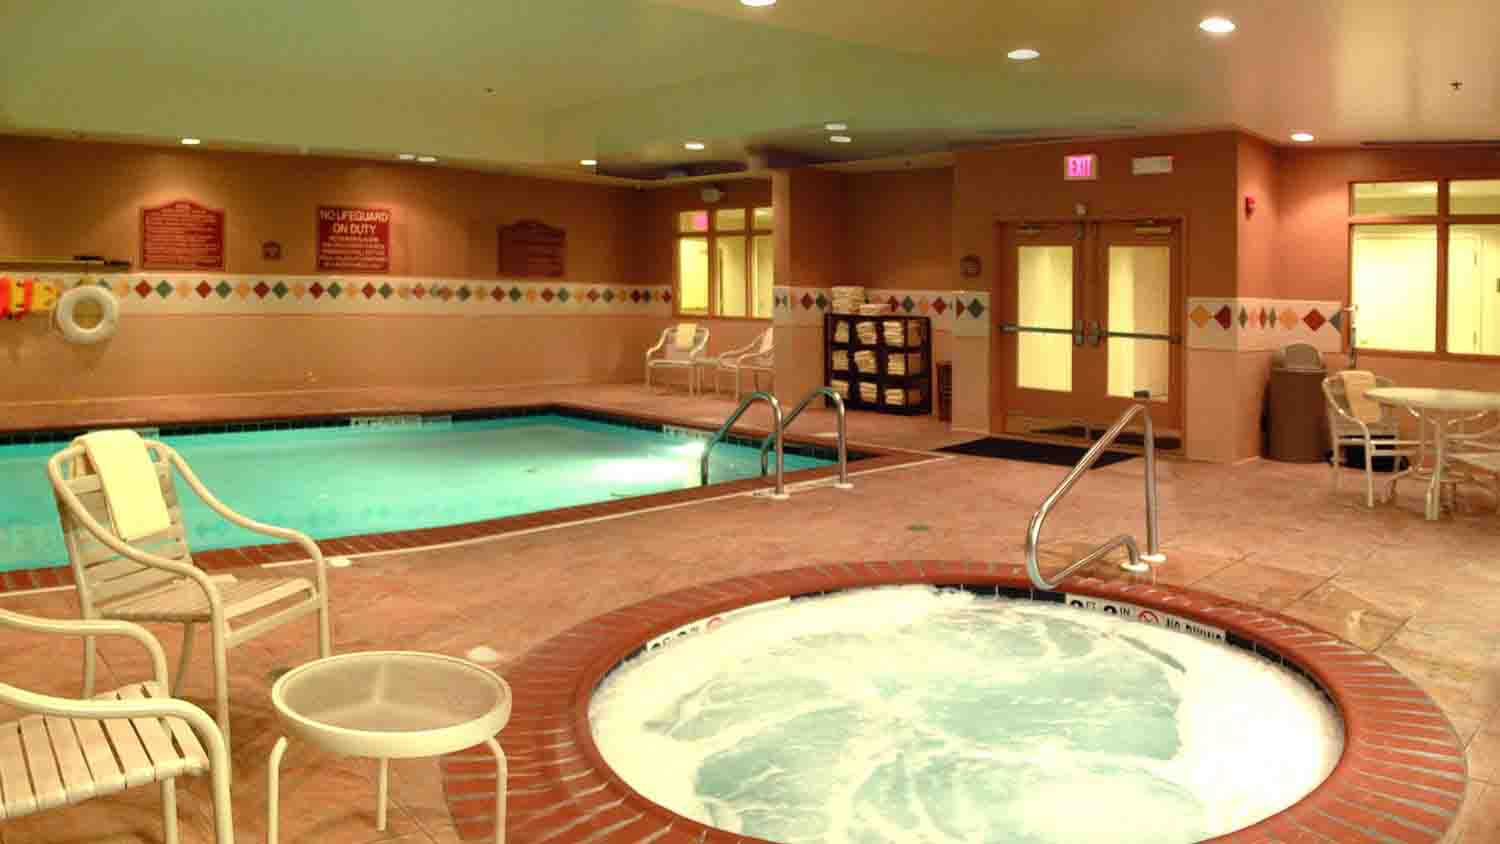 Hilton Garden Inn Indianapolis Northeast/Fishers 7